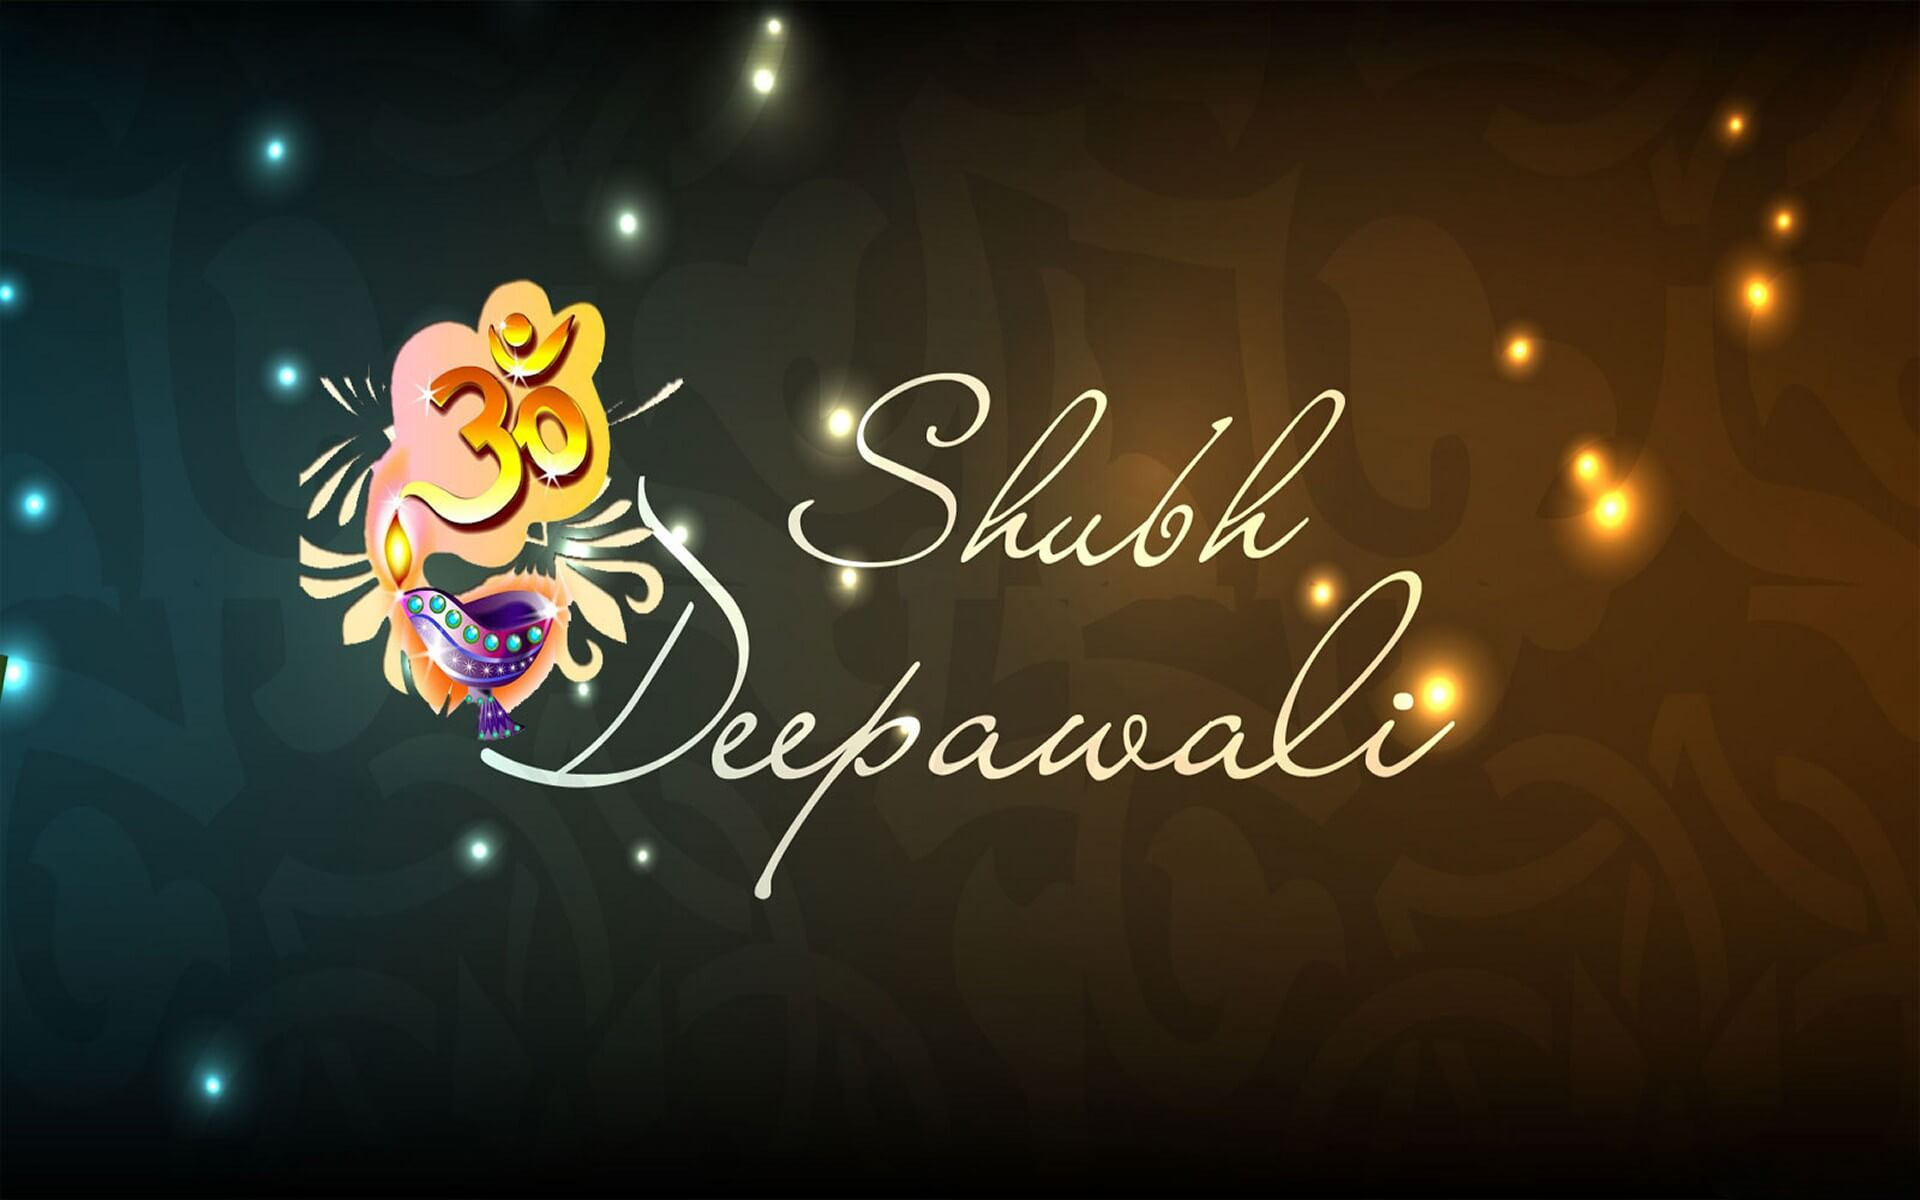 shubh diwali hd wallpaper images greeting card